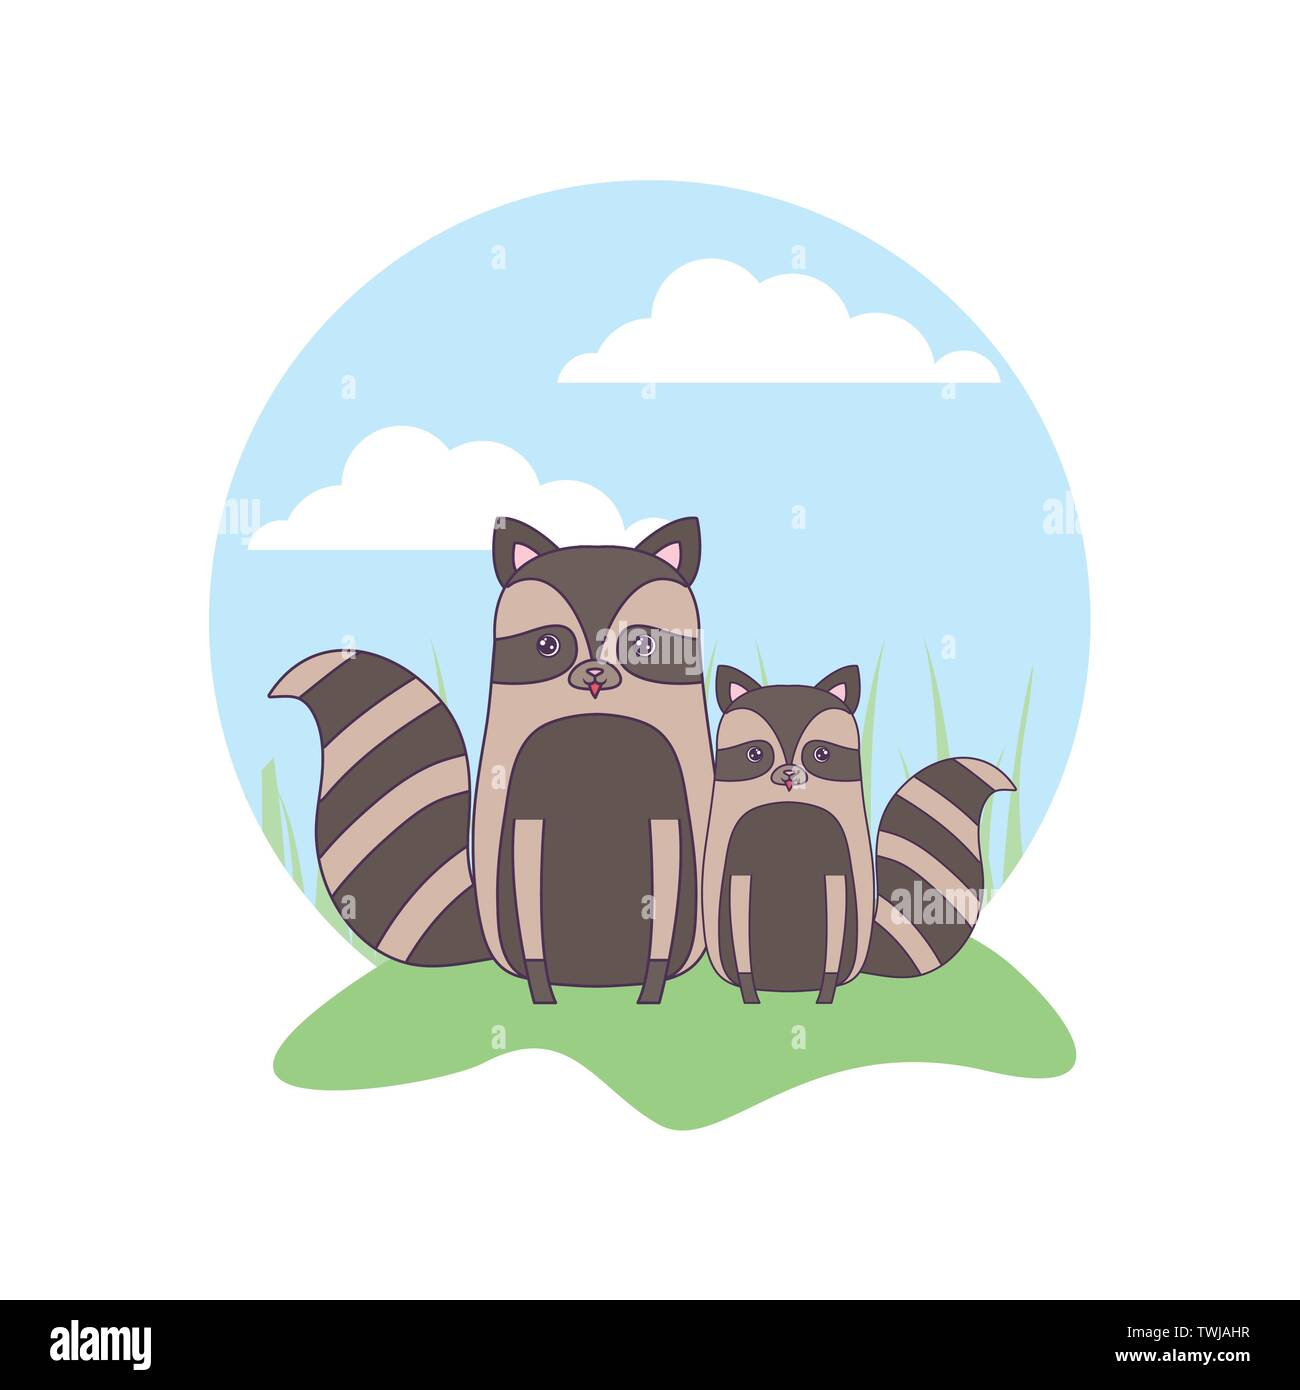 cute group of raccoons animals in landscape vector illustration design - Stock Image